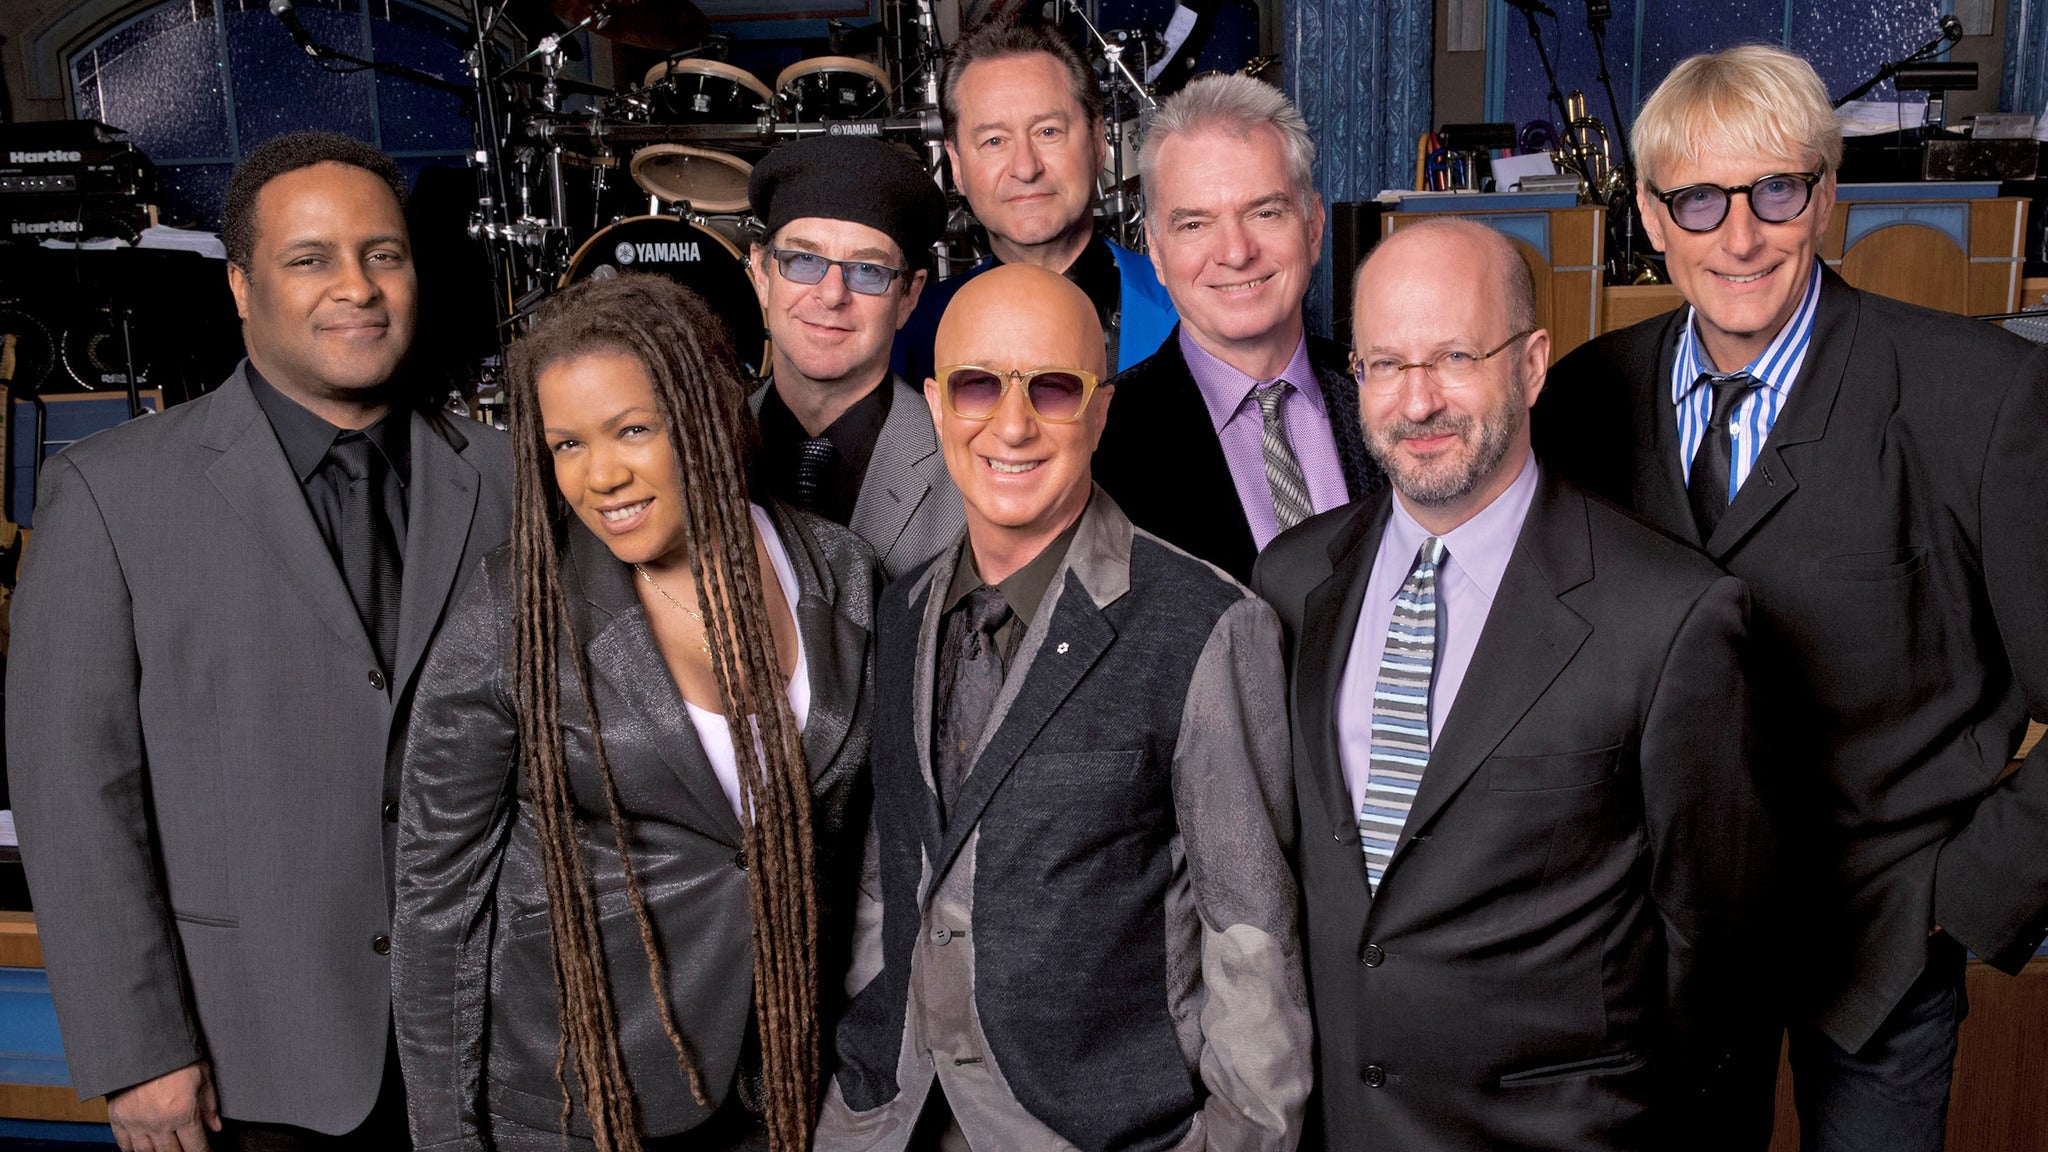 Paul Shaffer at Center Stage Theater